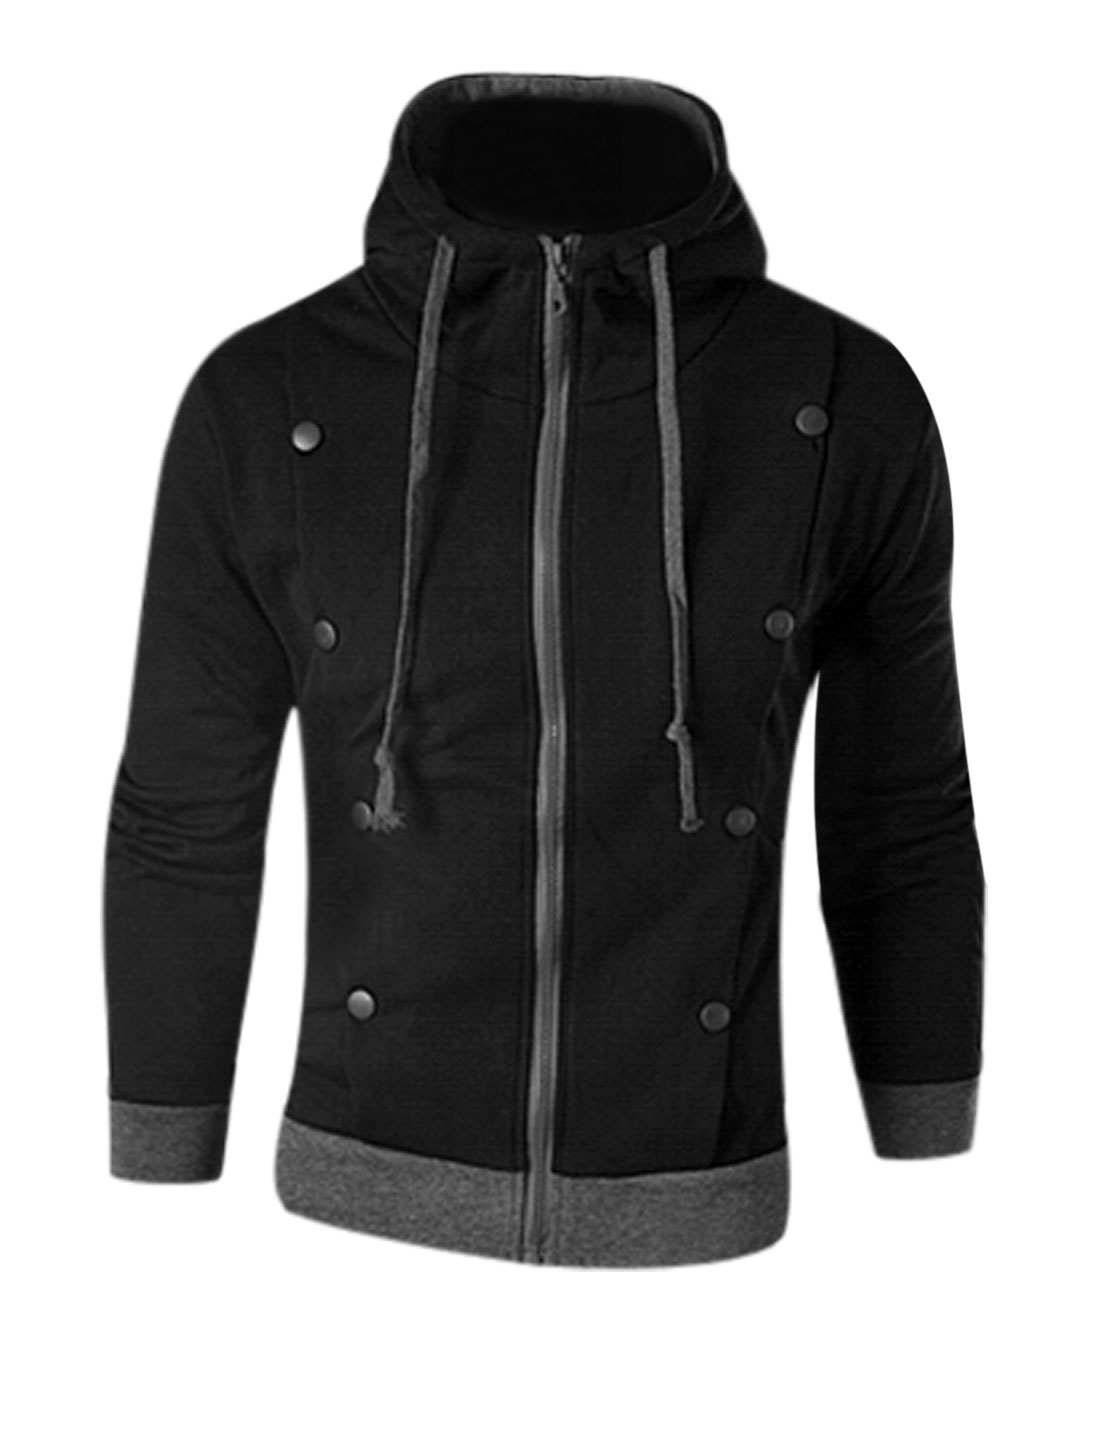 Man Black Button Decor Zipper Front Drawstring Detail Panel Hoodie Jacket S